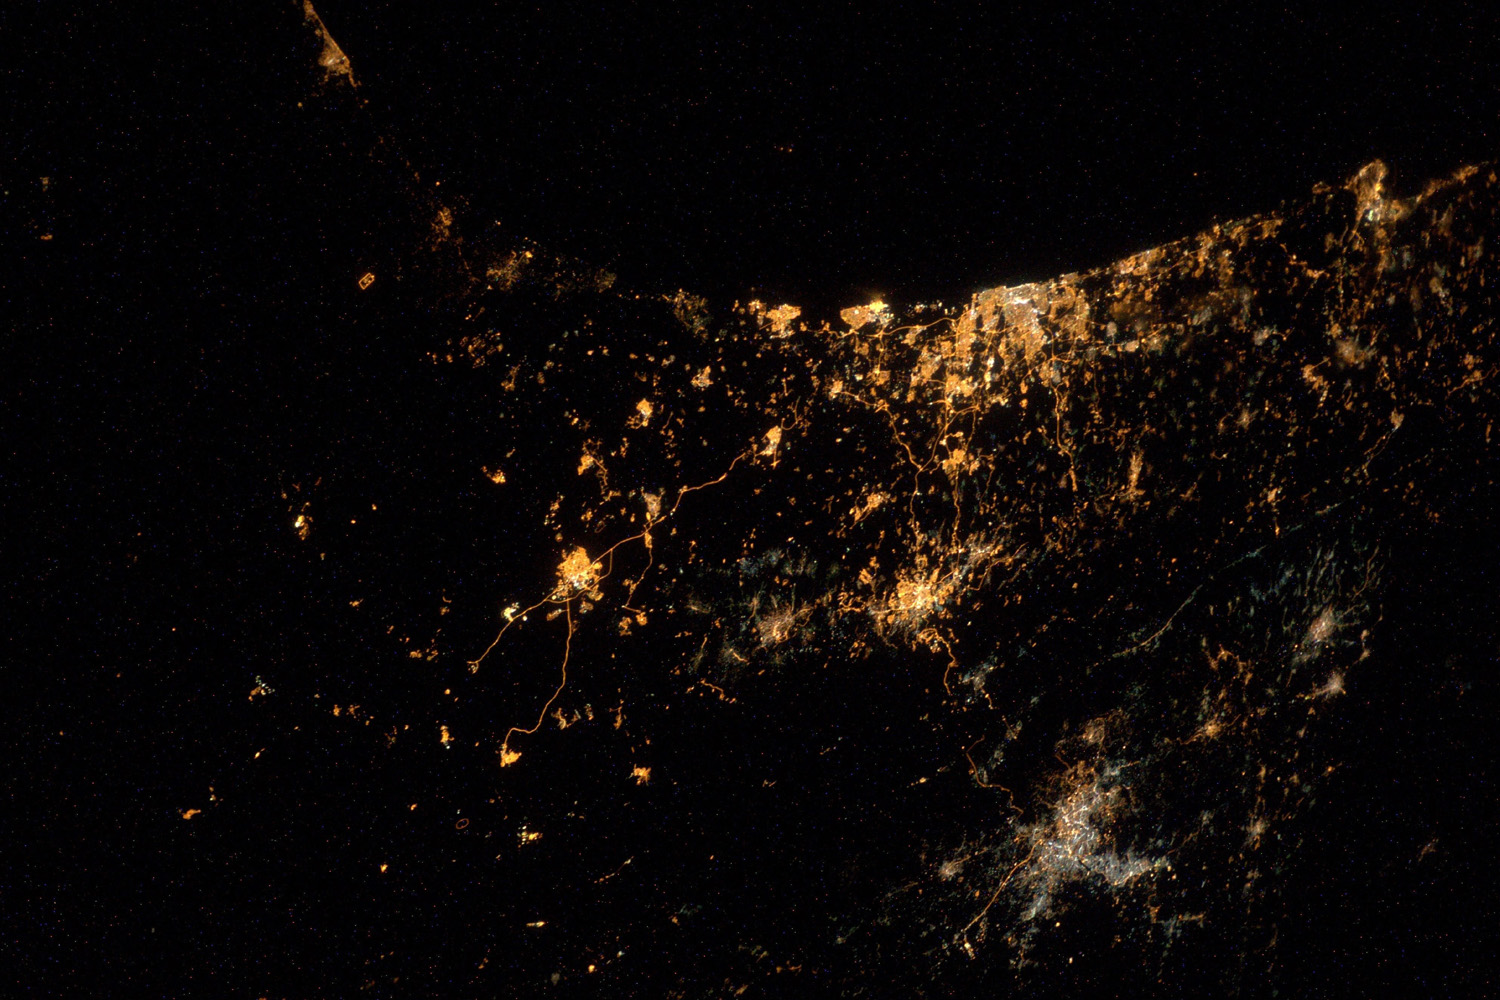 Jul. 24, 2014. European Space Agency, (ESA) astronaut Alexander Gerst,  My saddest photo yet. From the International Space Station we can actually see explosions and rockets flying over Gaza and Israel.